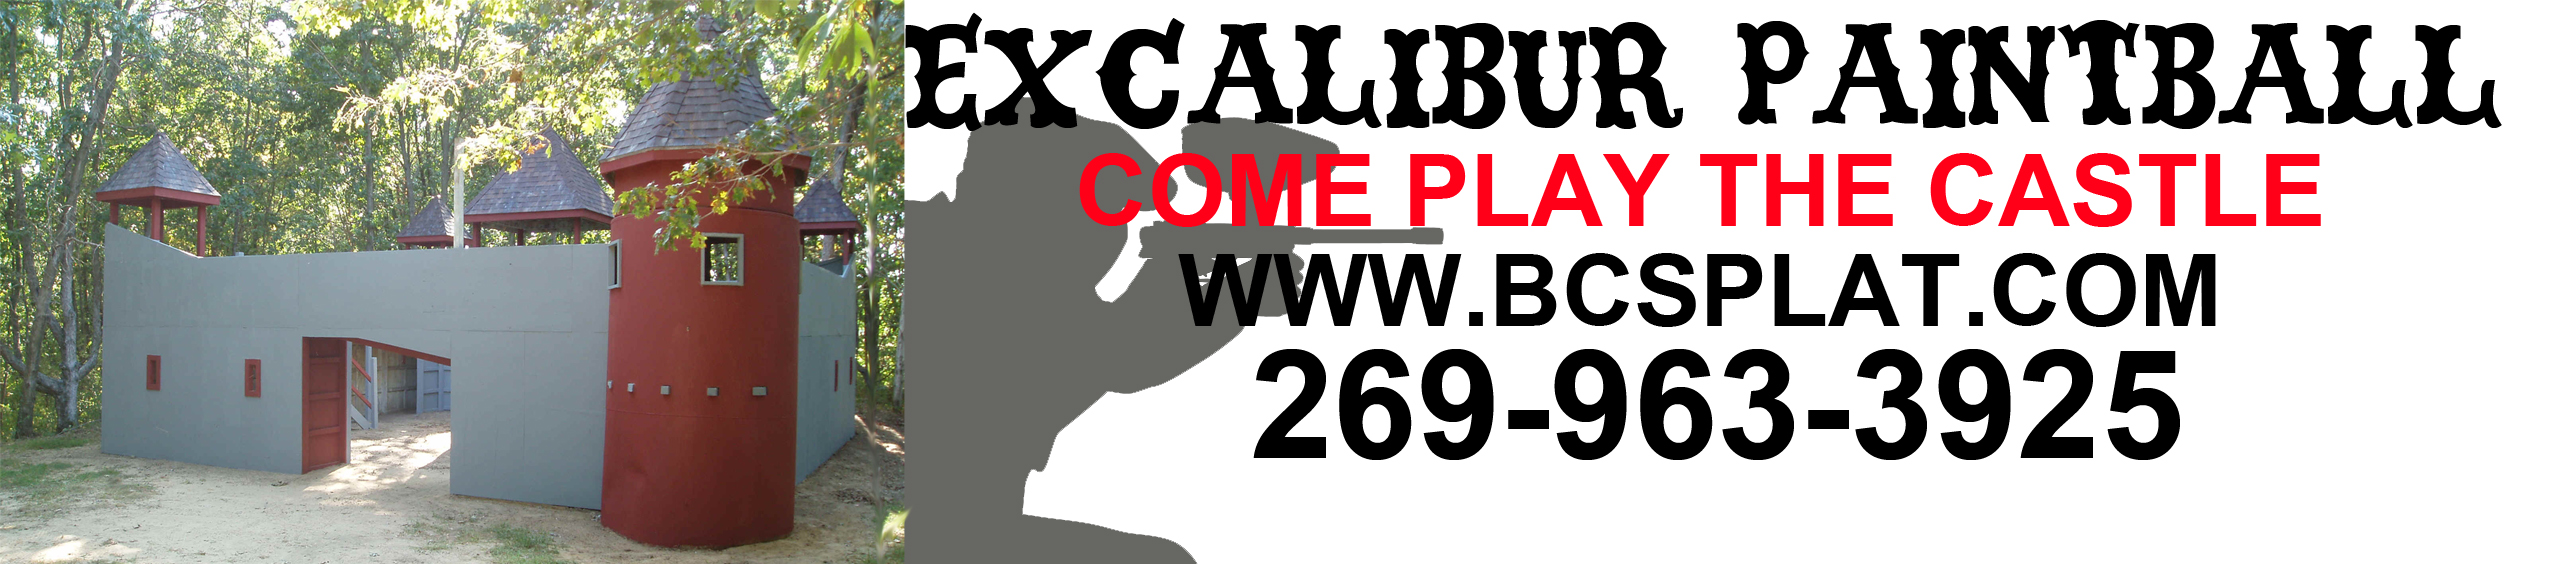 Excalibur Paintball